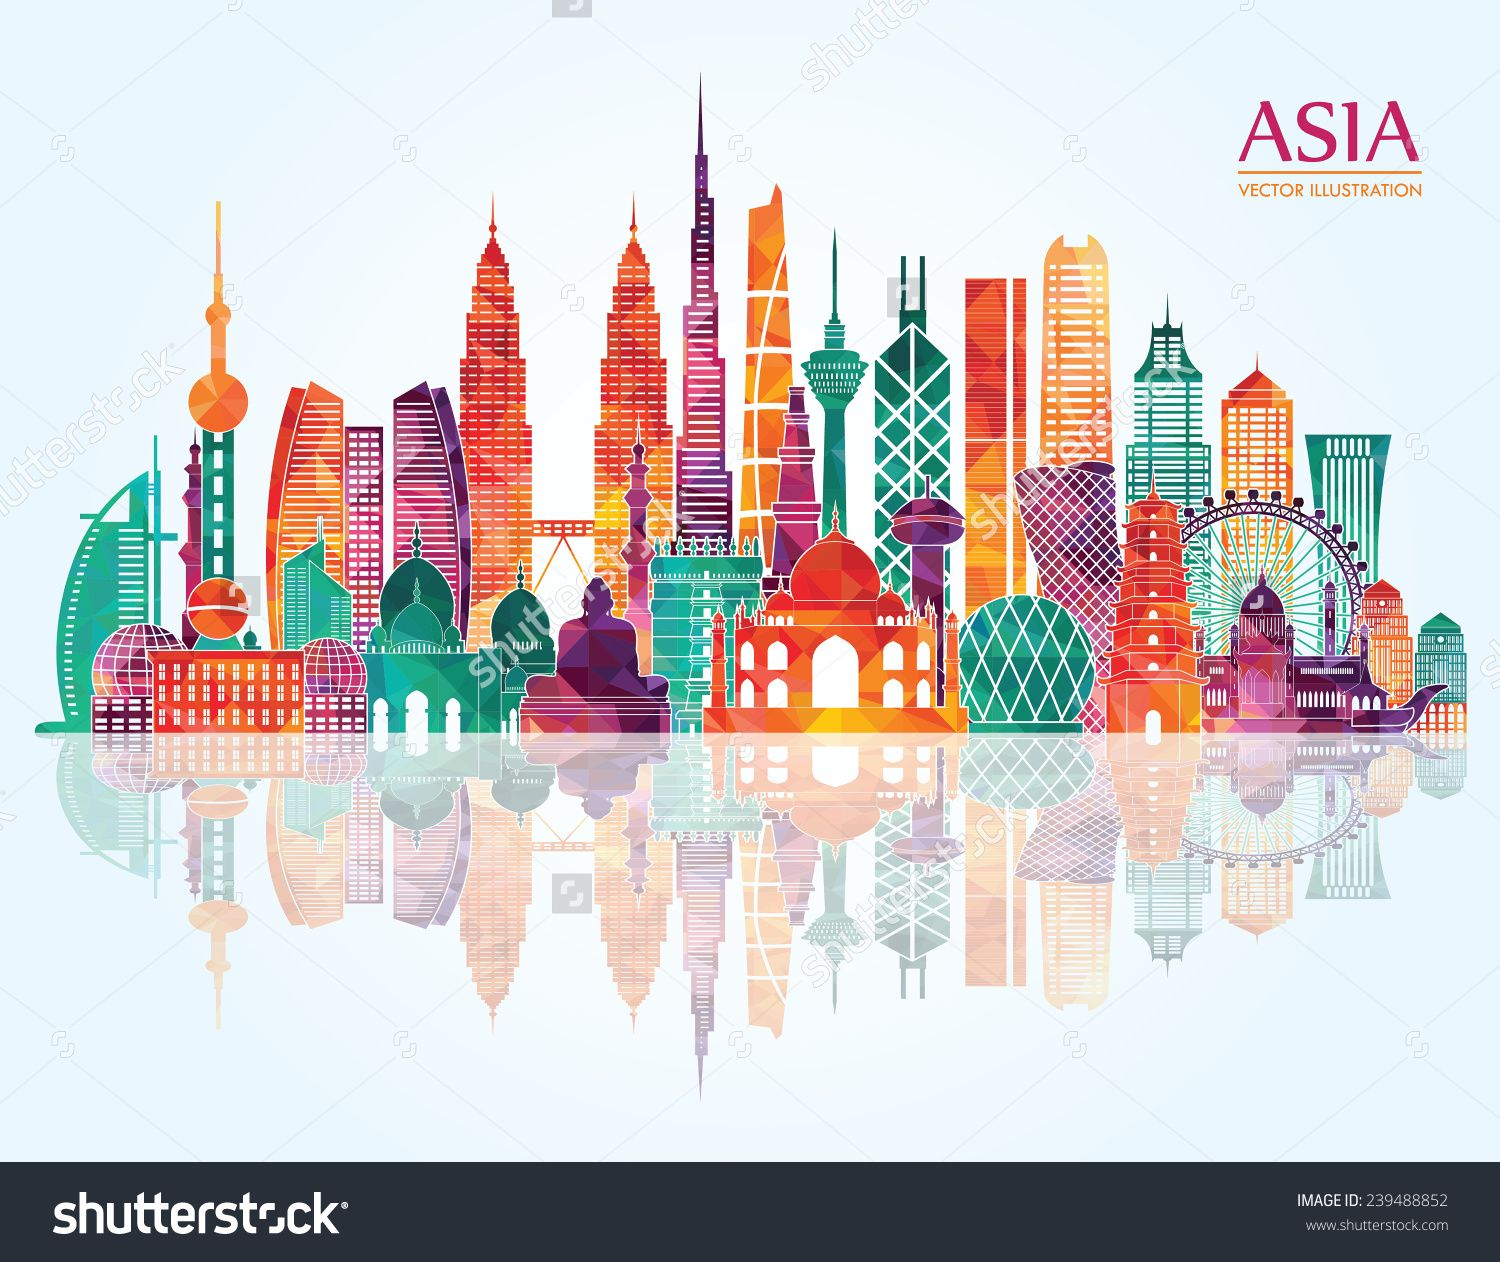 Asia skyline clipart png black and white stock Asia Skyline Detailed Silhouette. Vector Illustration - 239488852 ... png black and white stock